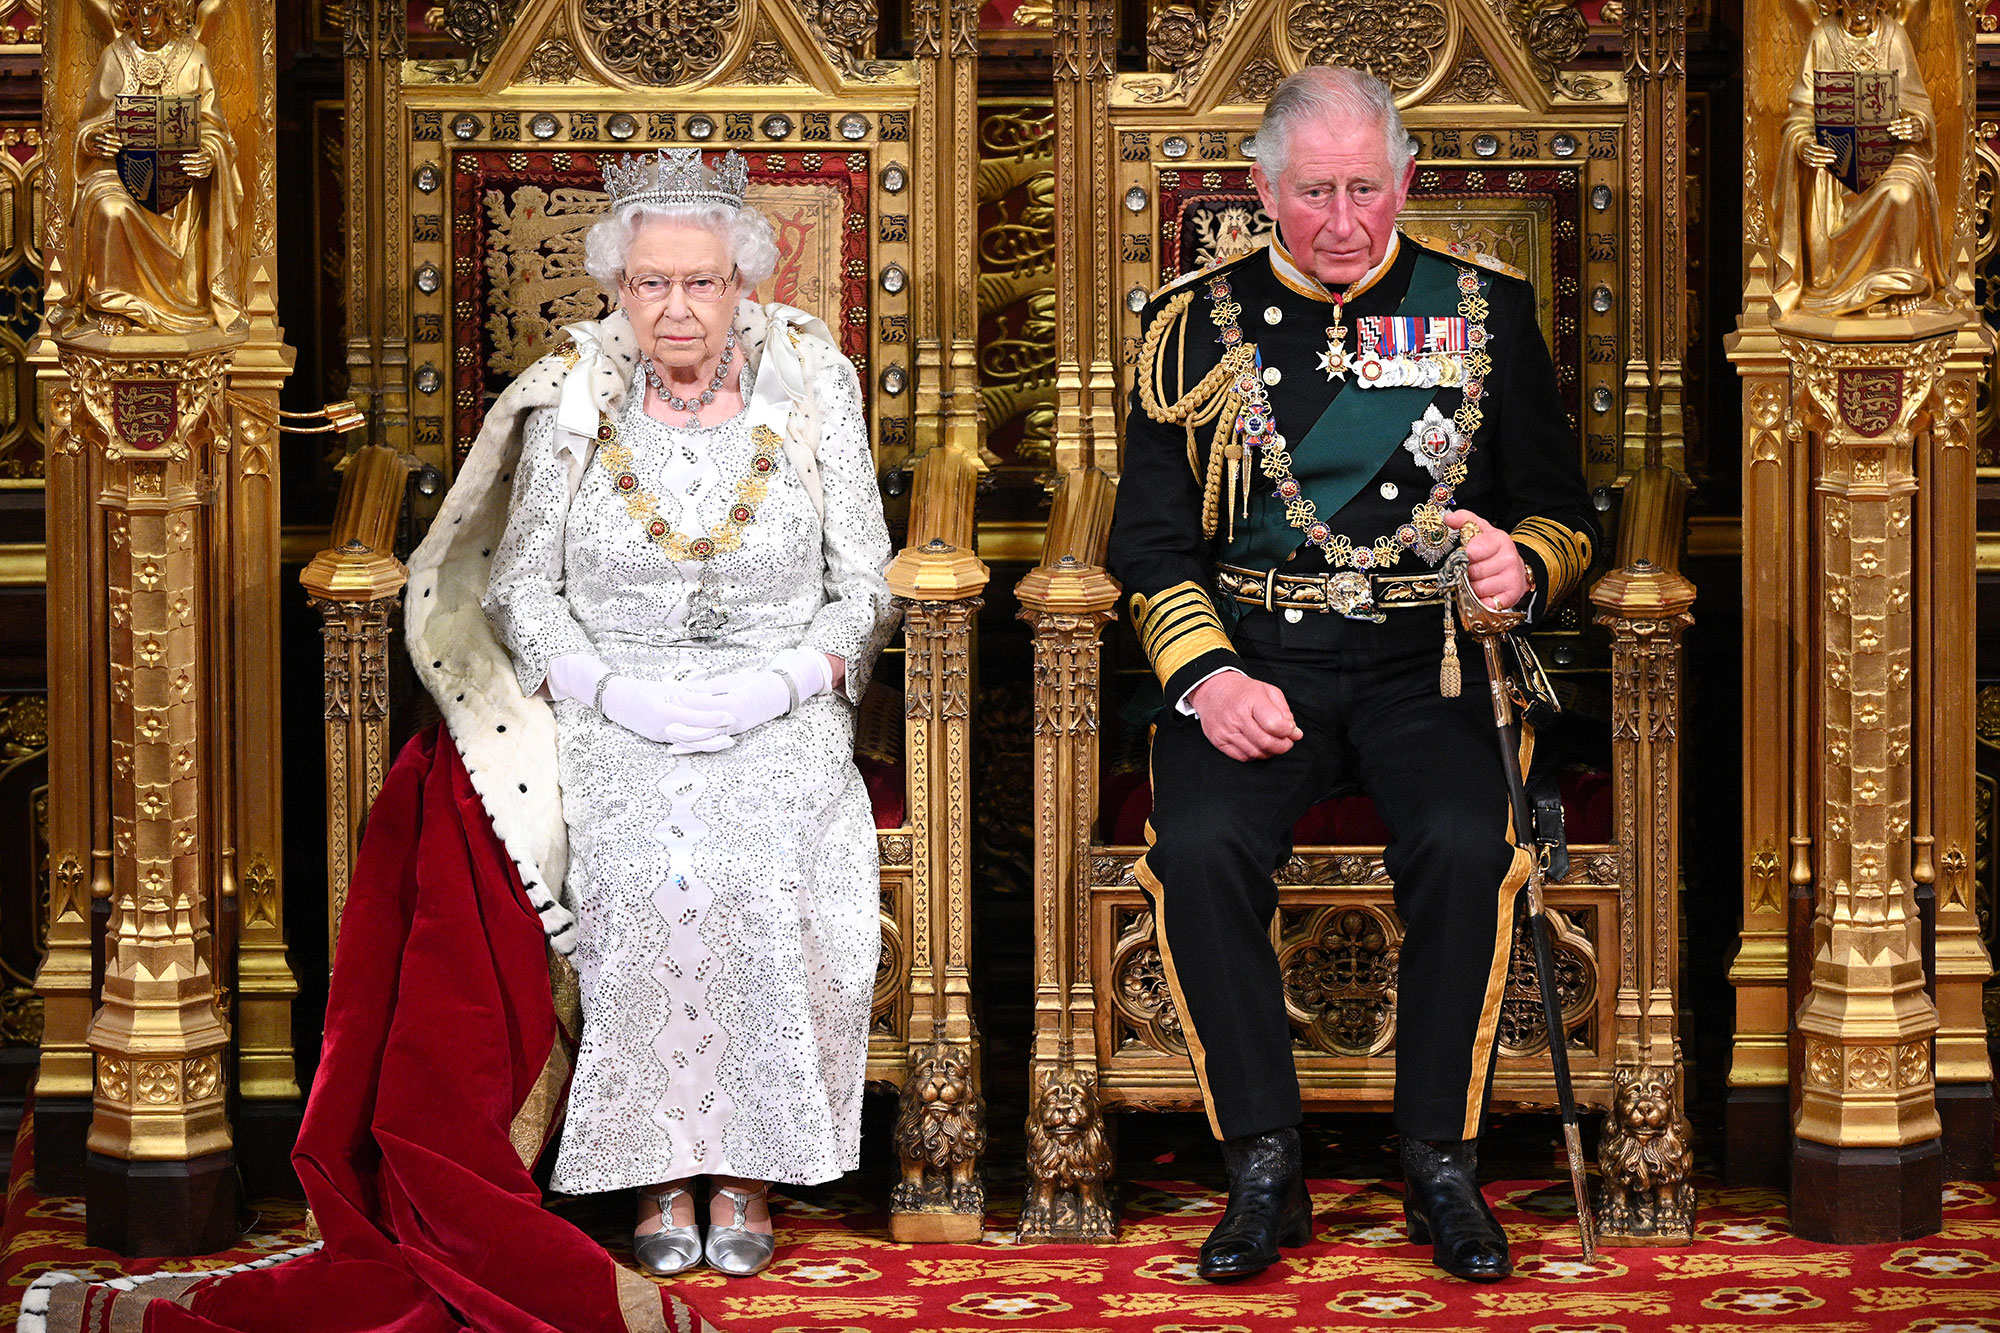 Queen Elizabeth II and Prince Charles State Opening of Parliament Adjust Schedules Amid Coronavirus Pandemic